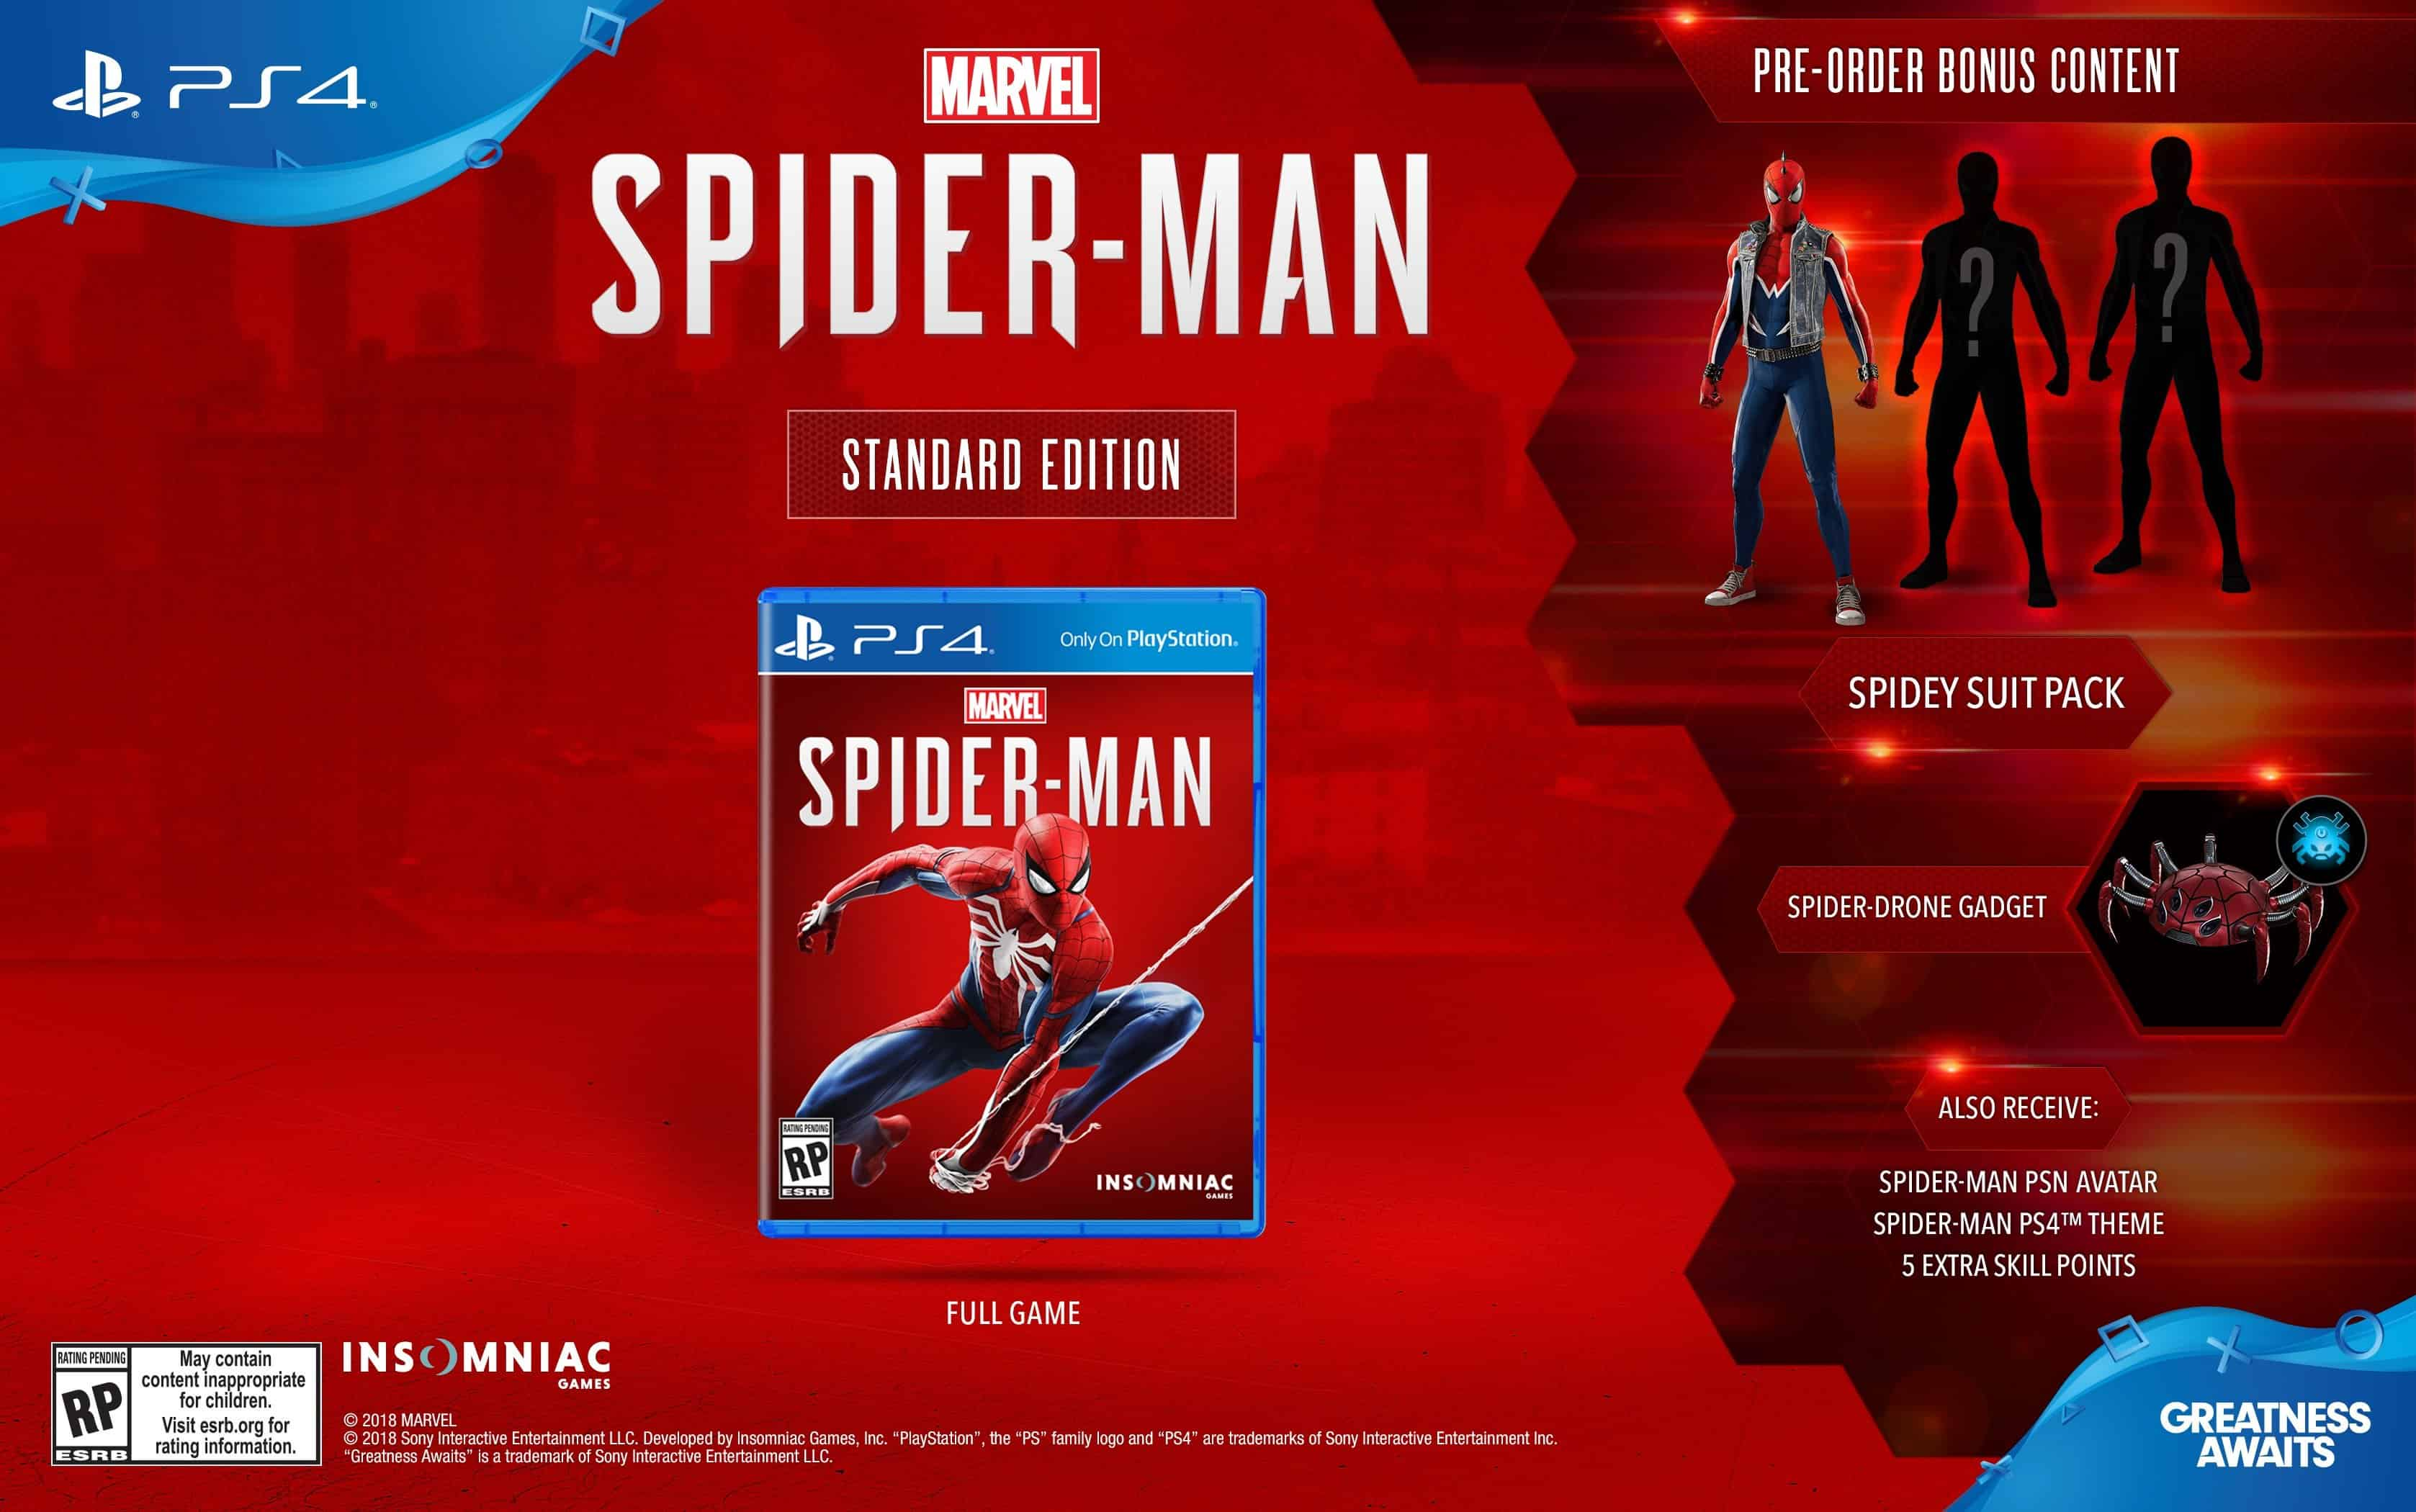 marvel's spider-man editions detailed - which one is best for you?